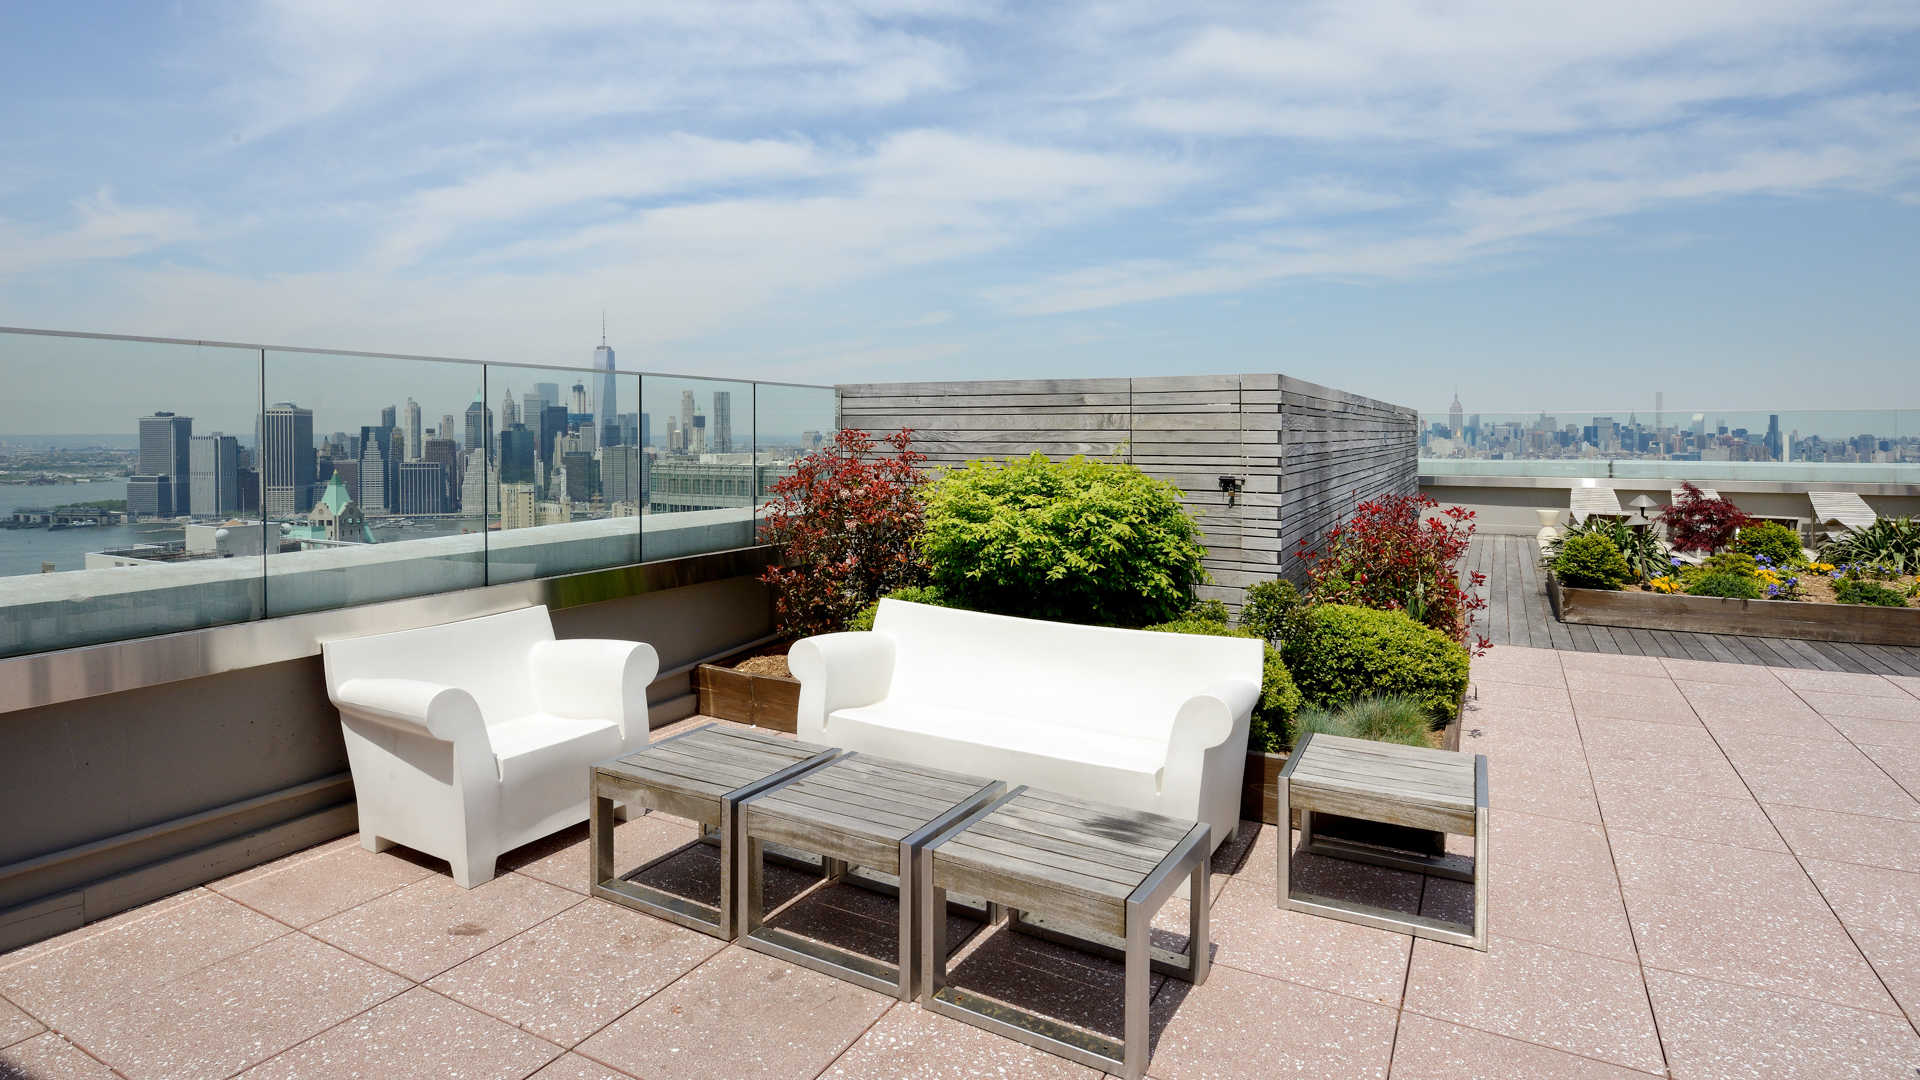 Rooftop Lounge with Views of the City